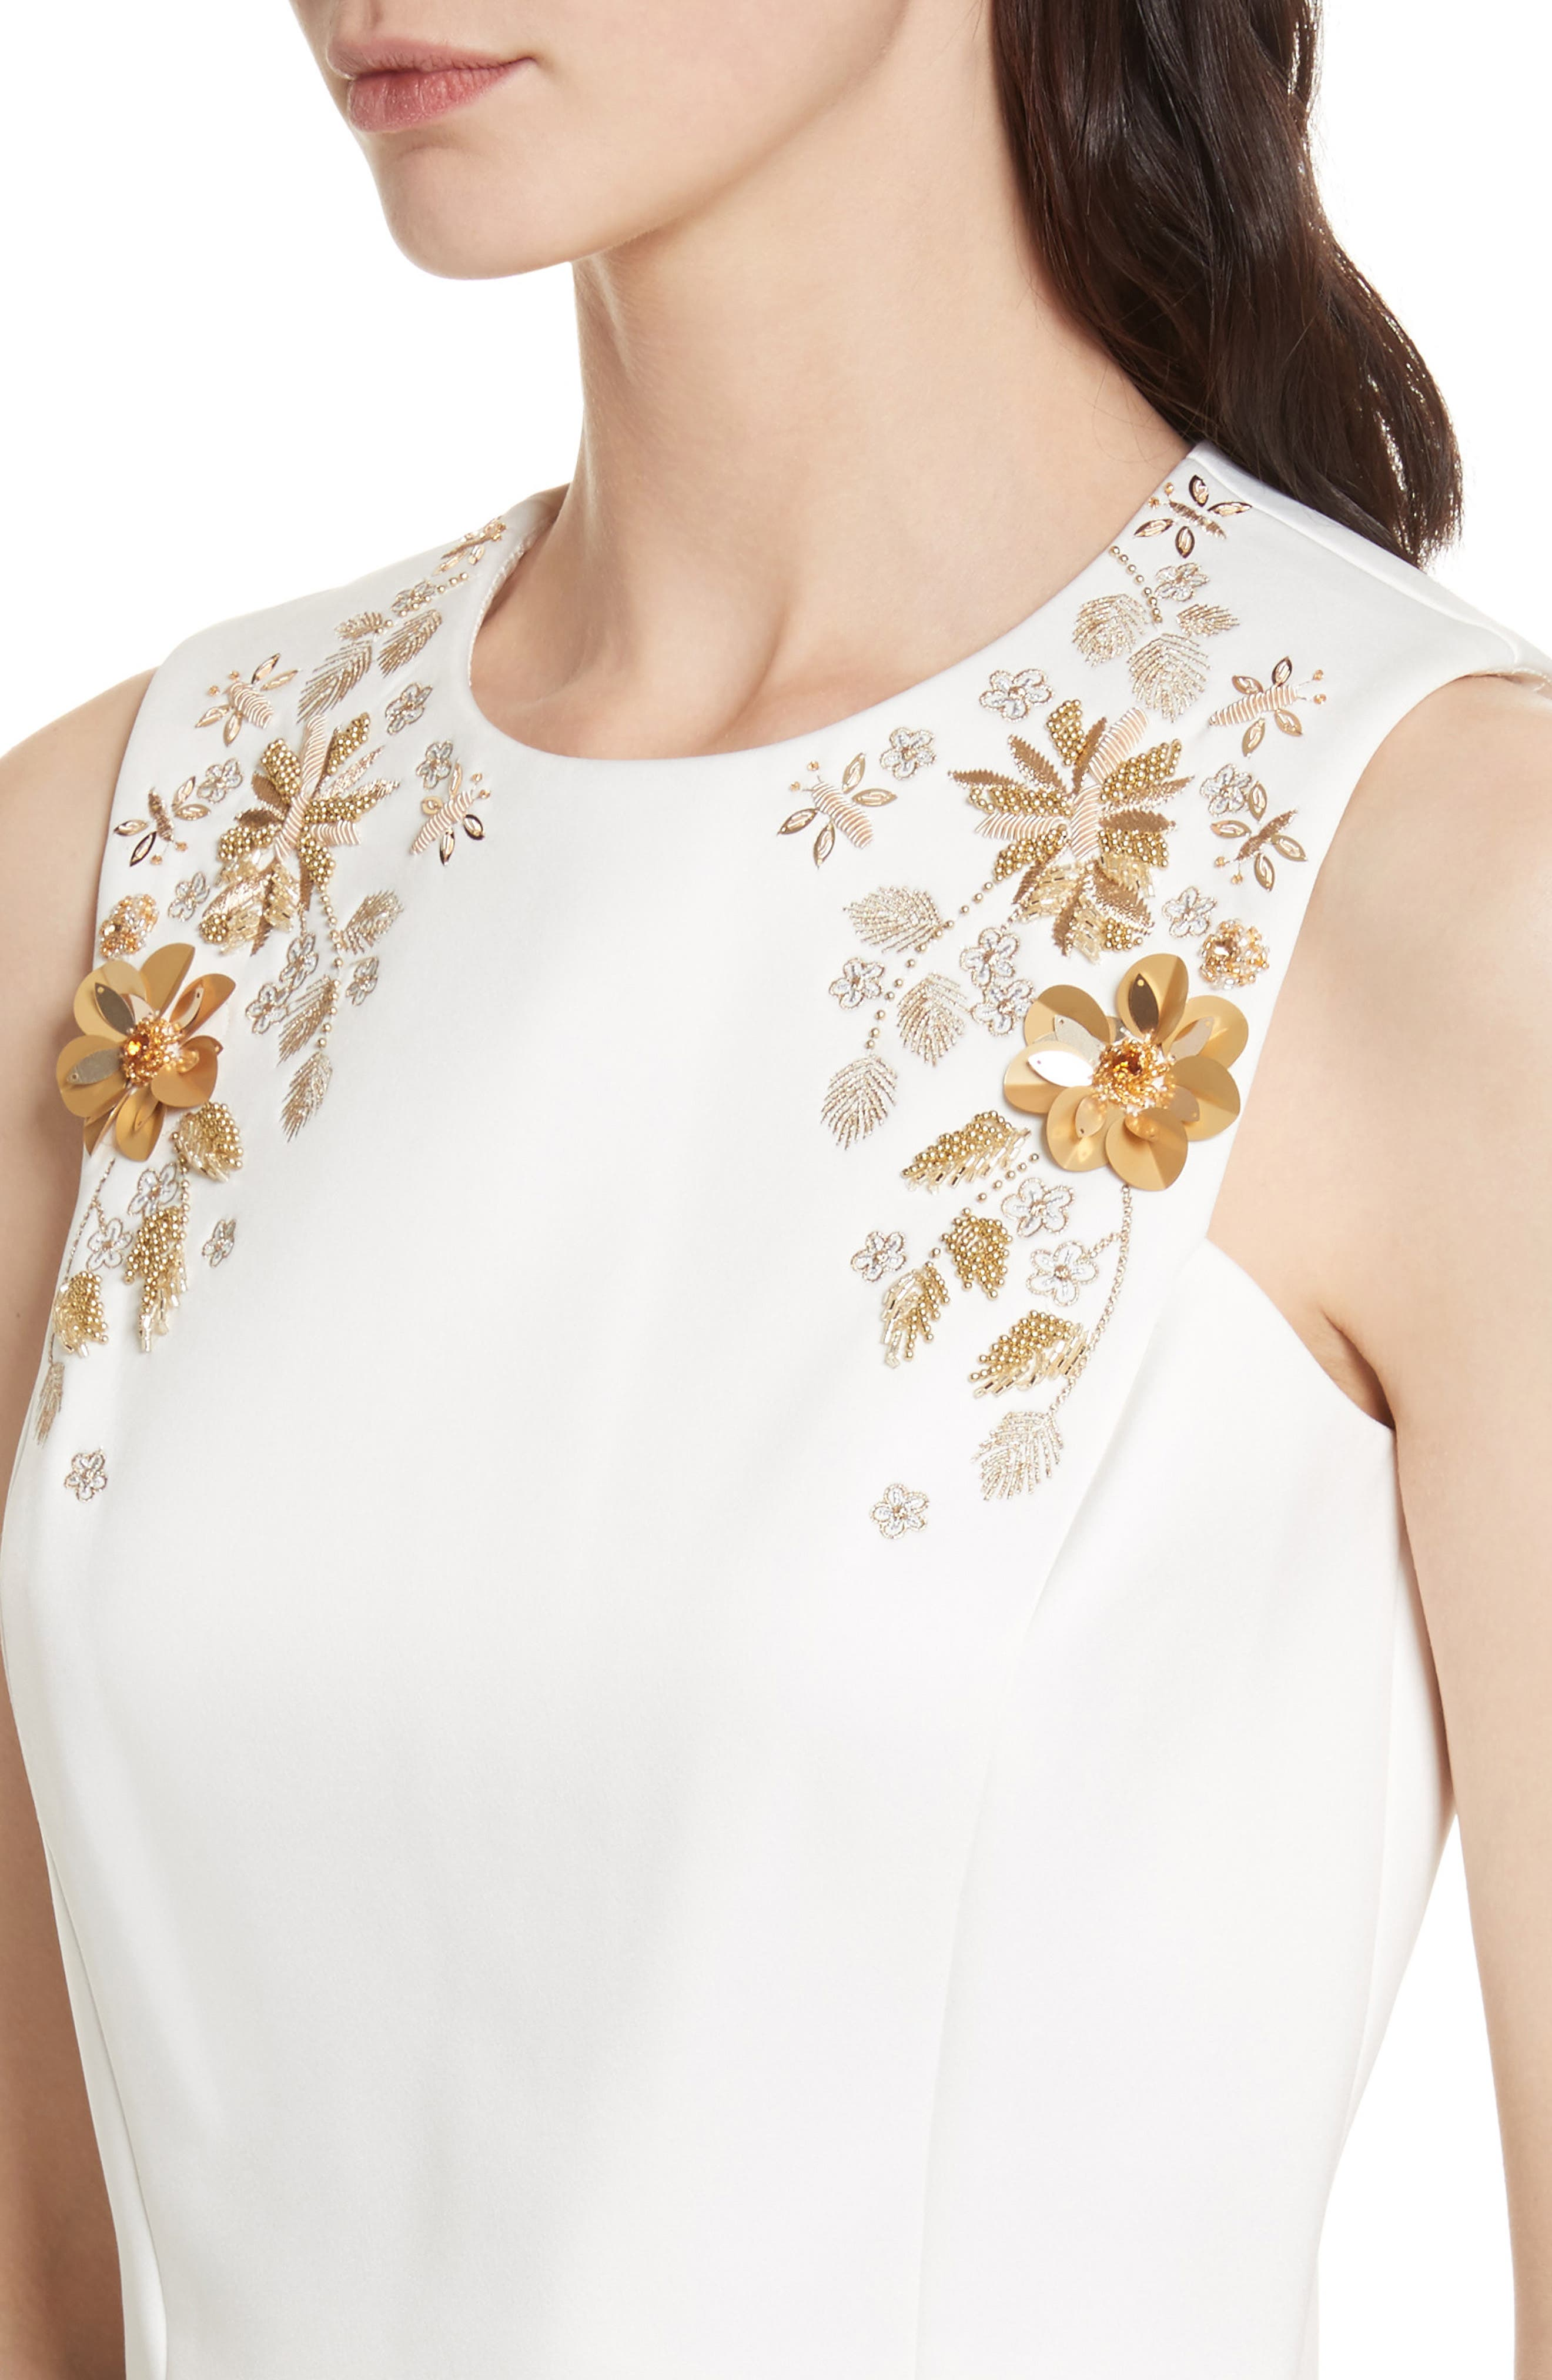 Embellished Bee Sleeveless Crop Top,                             Alternate thumbnail 4, color,                             115